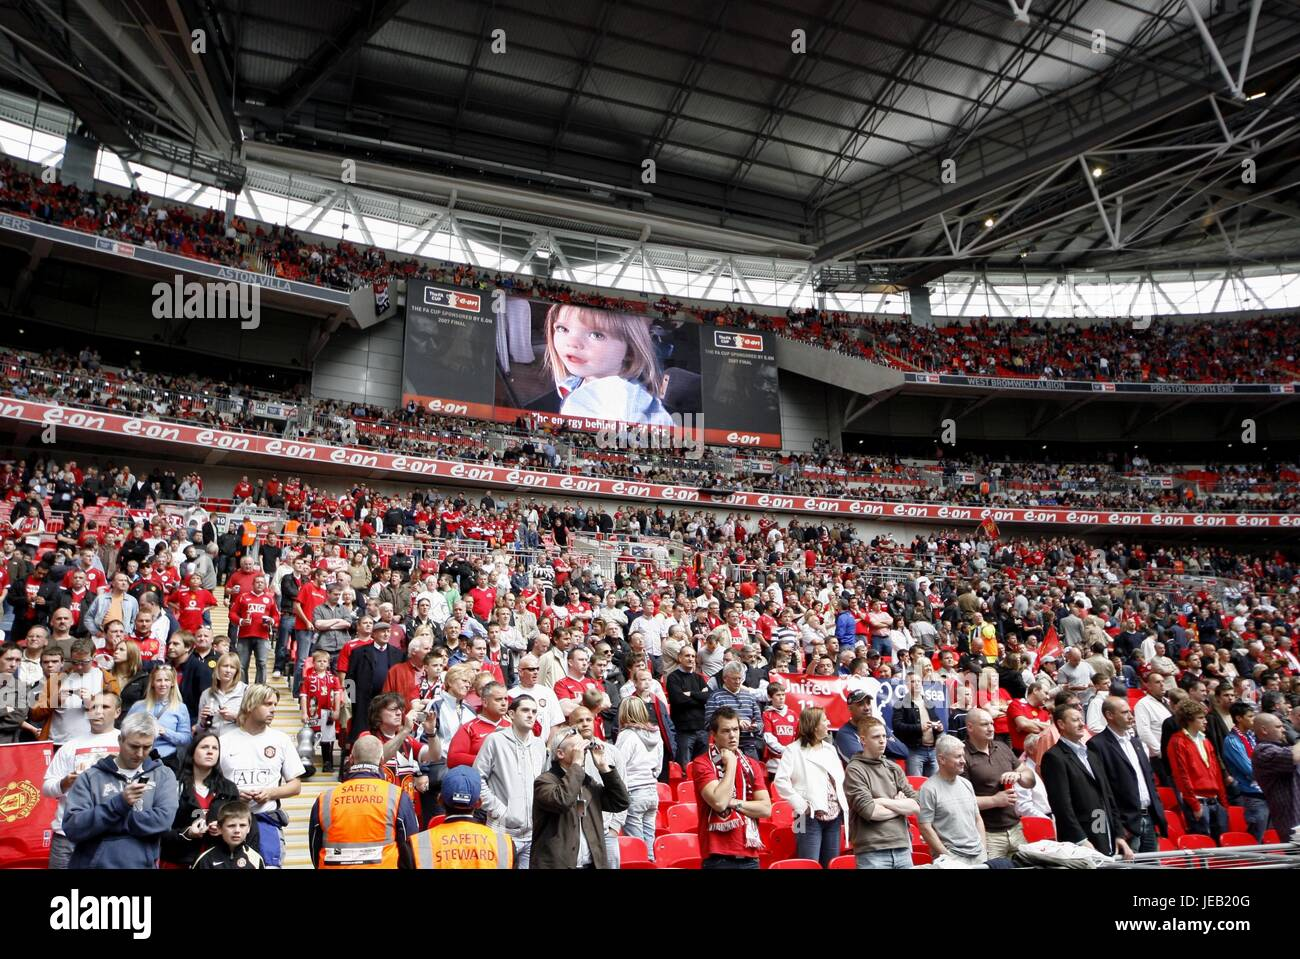 MADELEINE MCCANN APPEAL CHELSEA V MANCHESTER UNITED WEMBLEY STADIUM LONDON ENGLAND 19 May 2007 - Stock Image